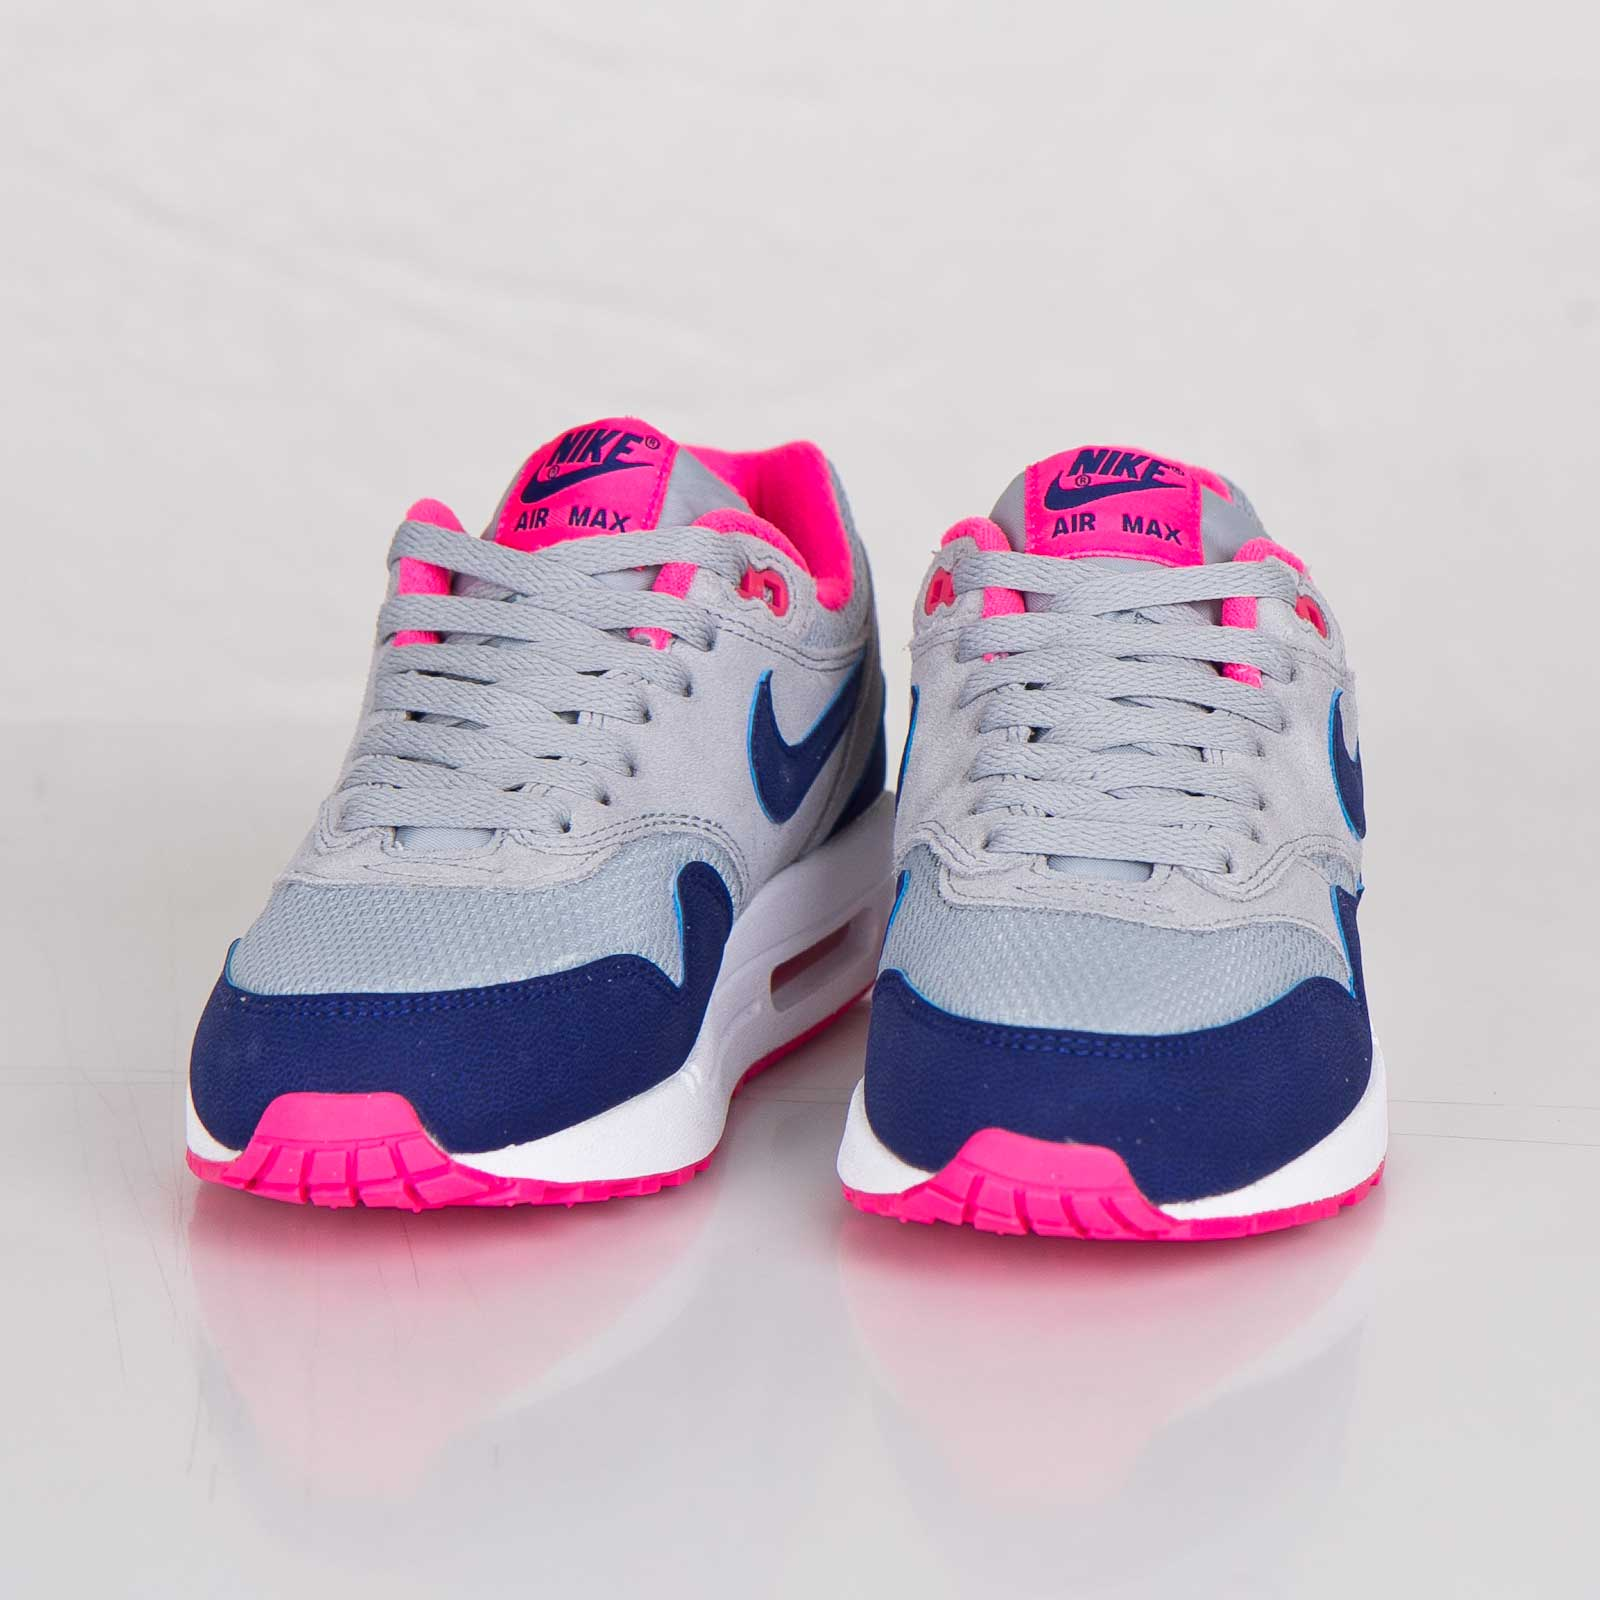 new concept 0b40e d4164 Nike Wmns Air Max 1 Essential - 599820-003 - Sneakersnstuff   sneakers    streetwear online since 1999